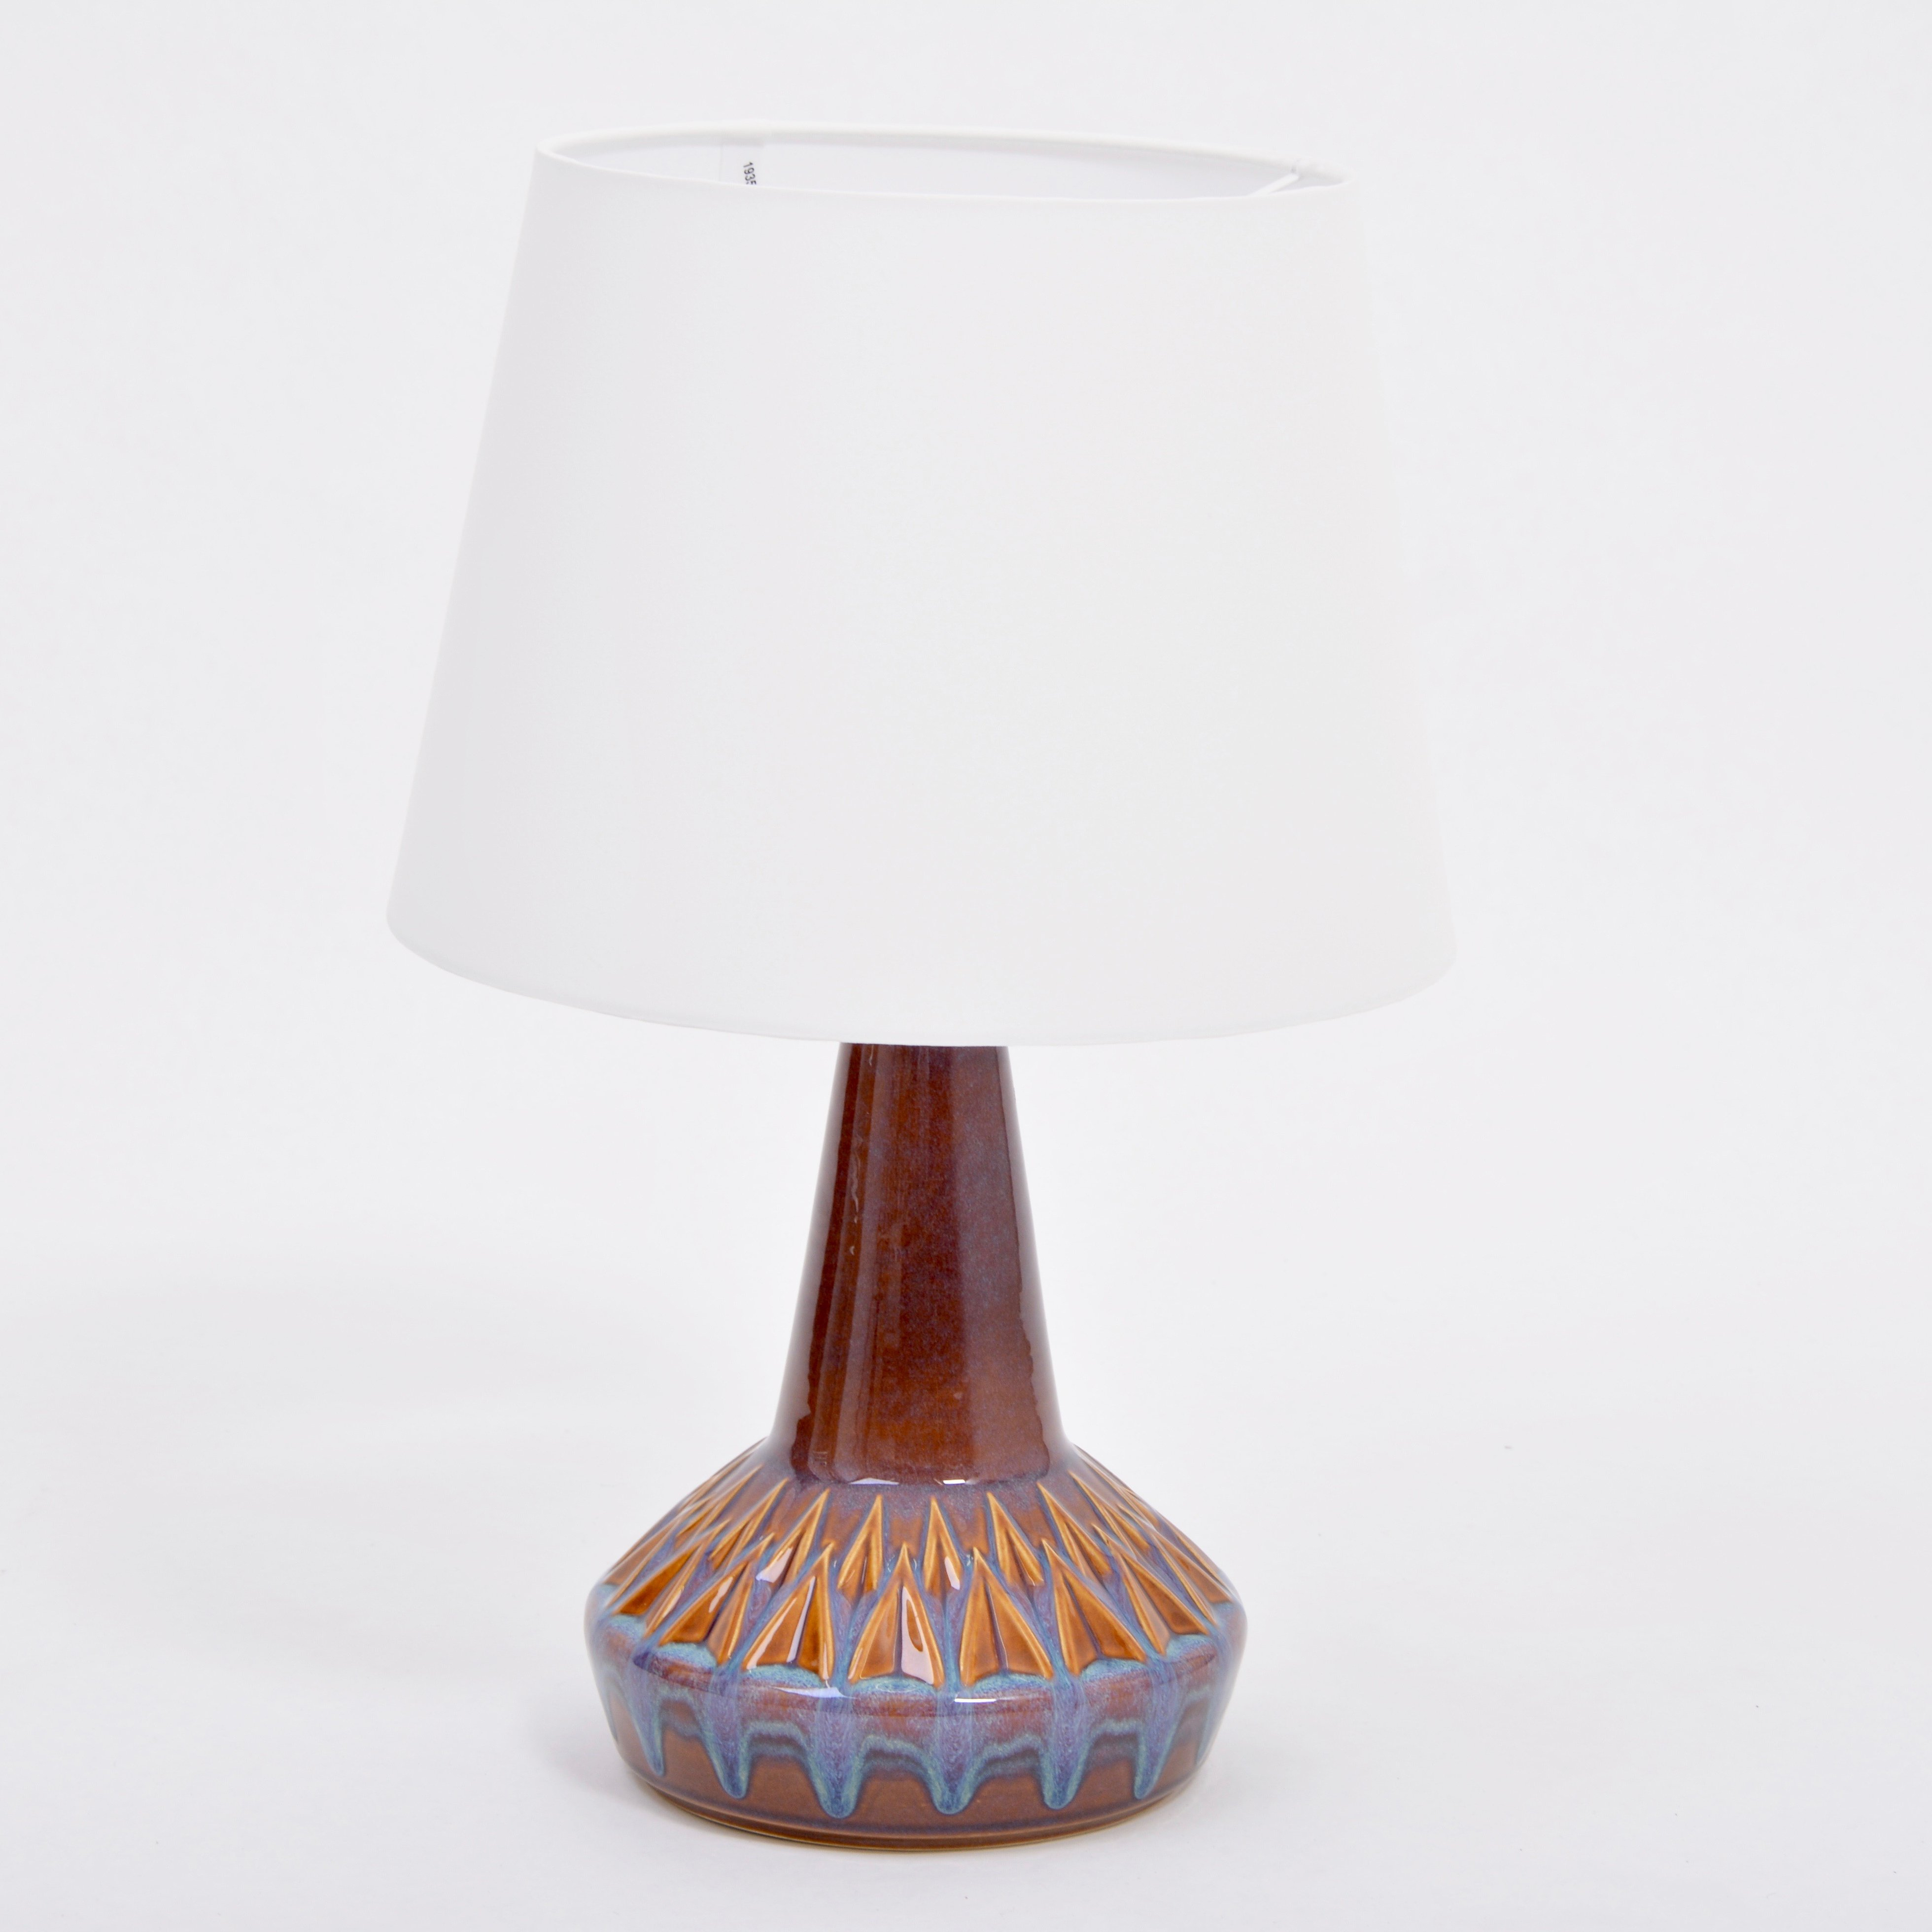 Danish Mid Century Modern Table Lamp Model 1058 By Soholm 138561